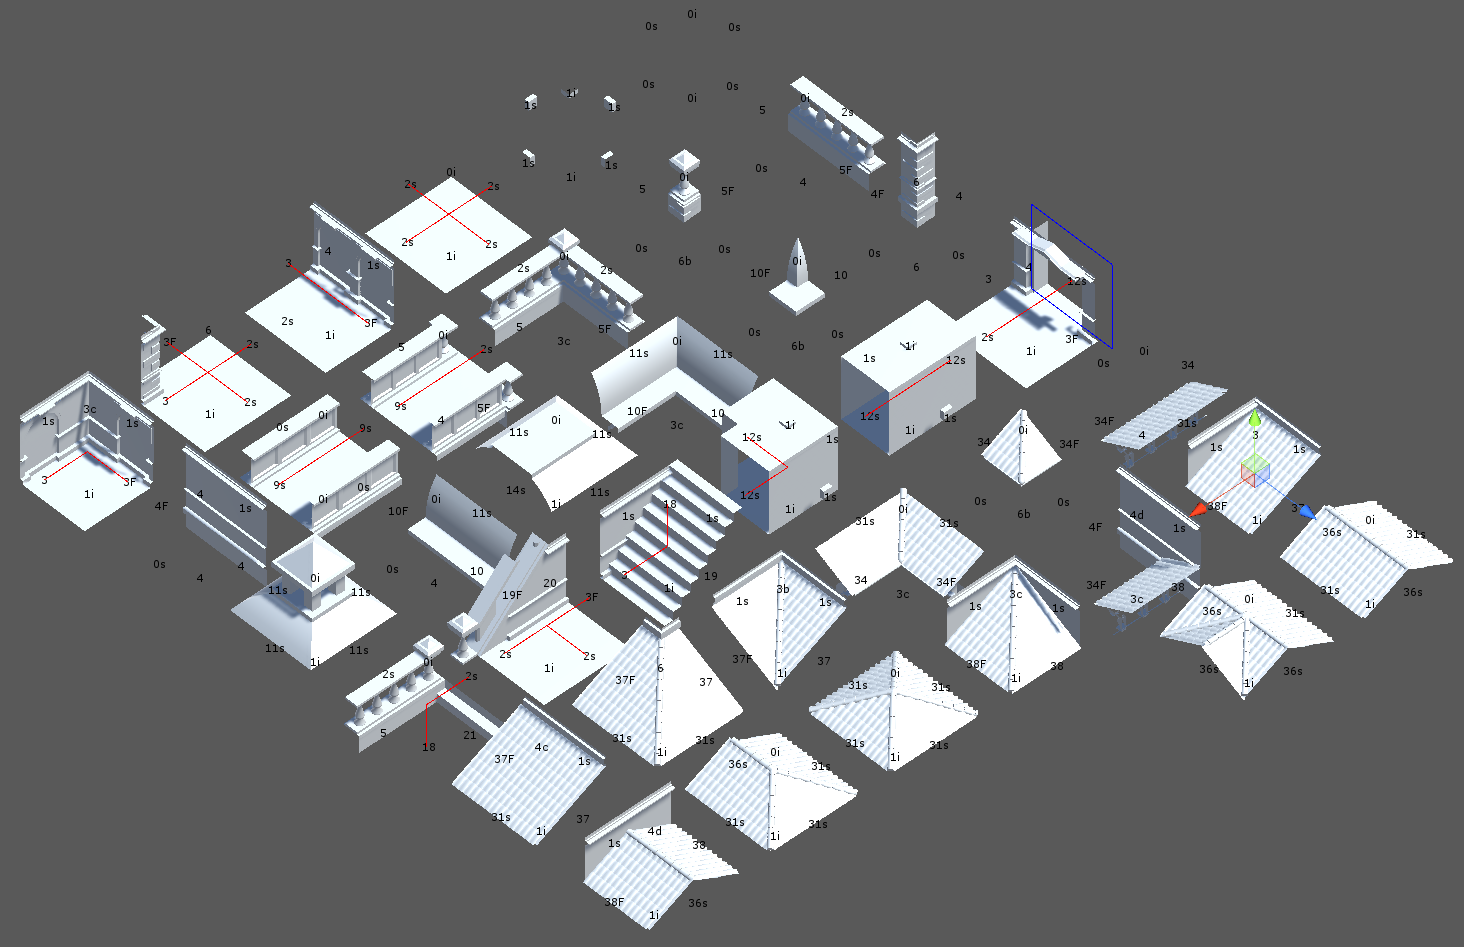 Infinite procedurally generated city with the Wave Function Collapse